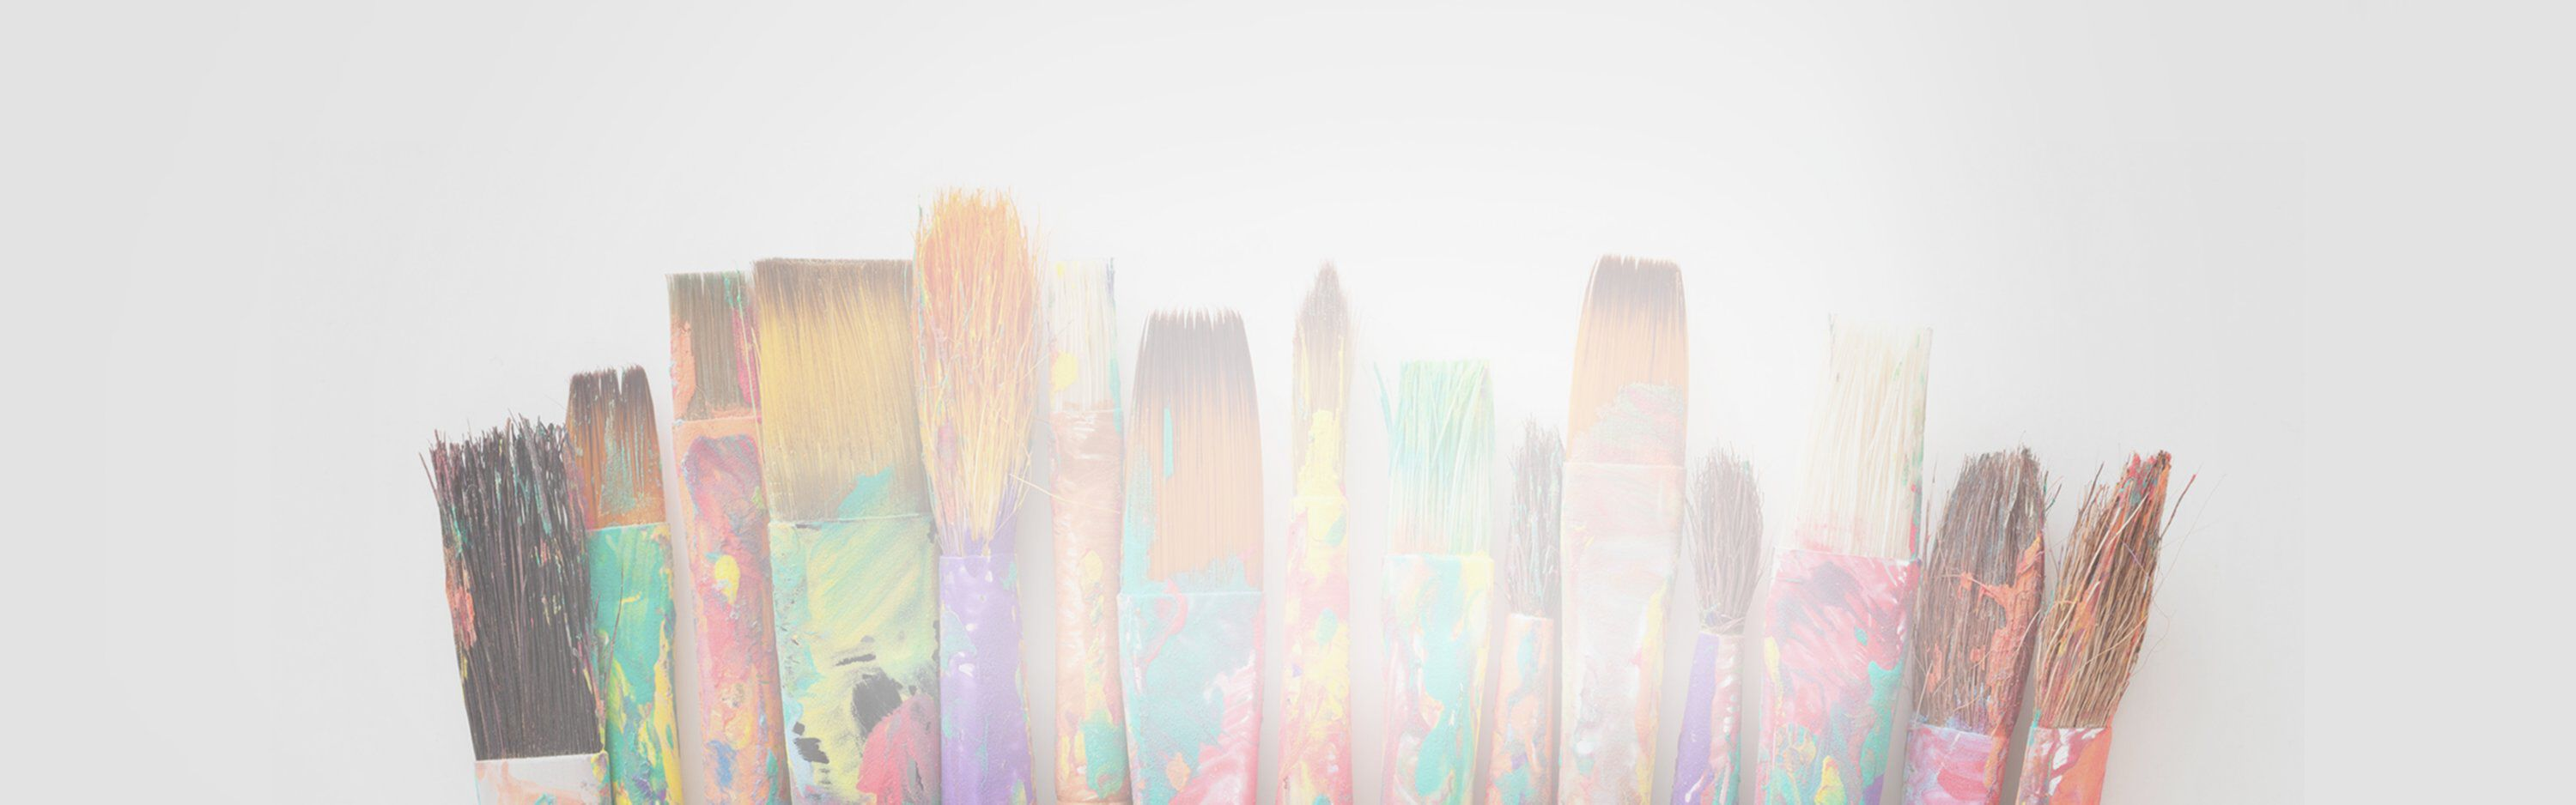 paintbrushes slim banner